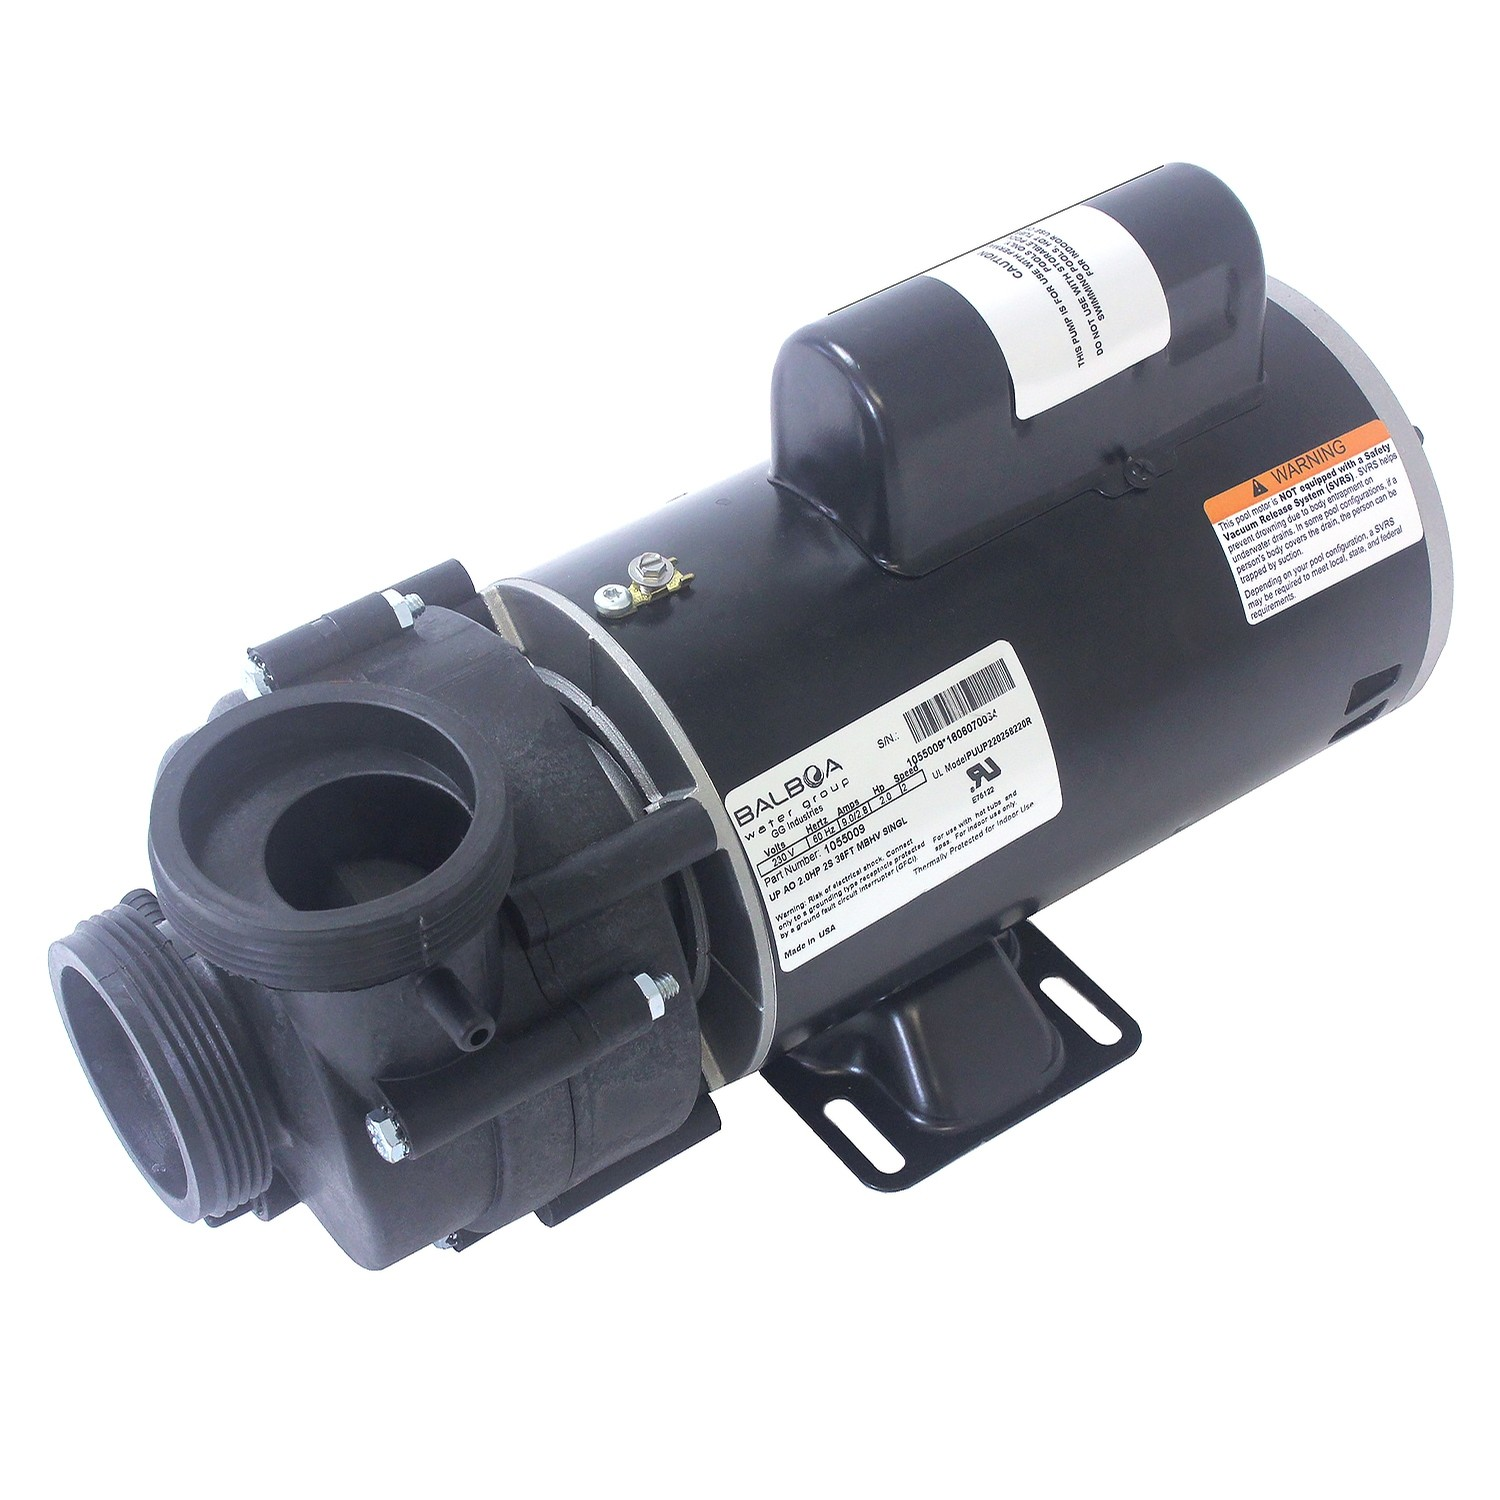 "Pump Vico Ultima Plus, 2HP, 230V, 10.5AMP, 2-SPEED2"", 48 FRAME"